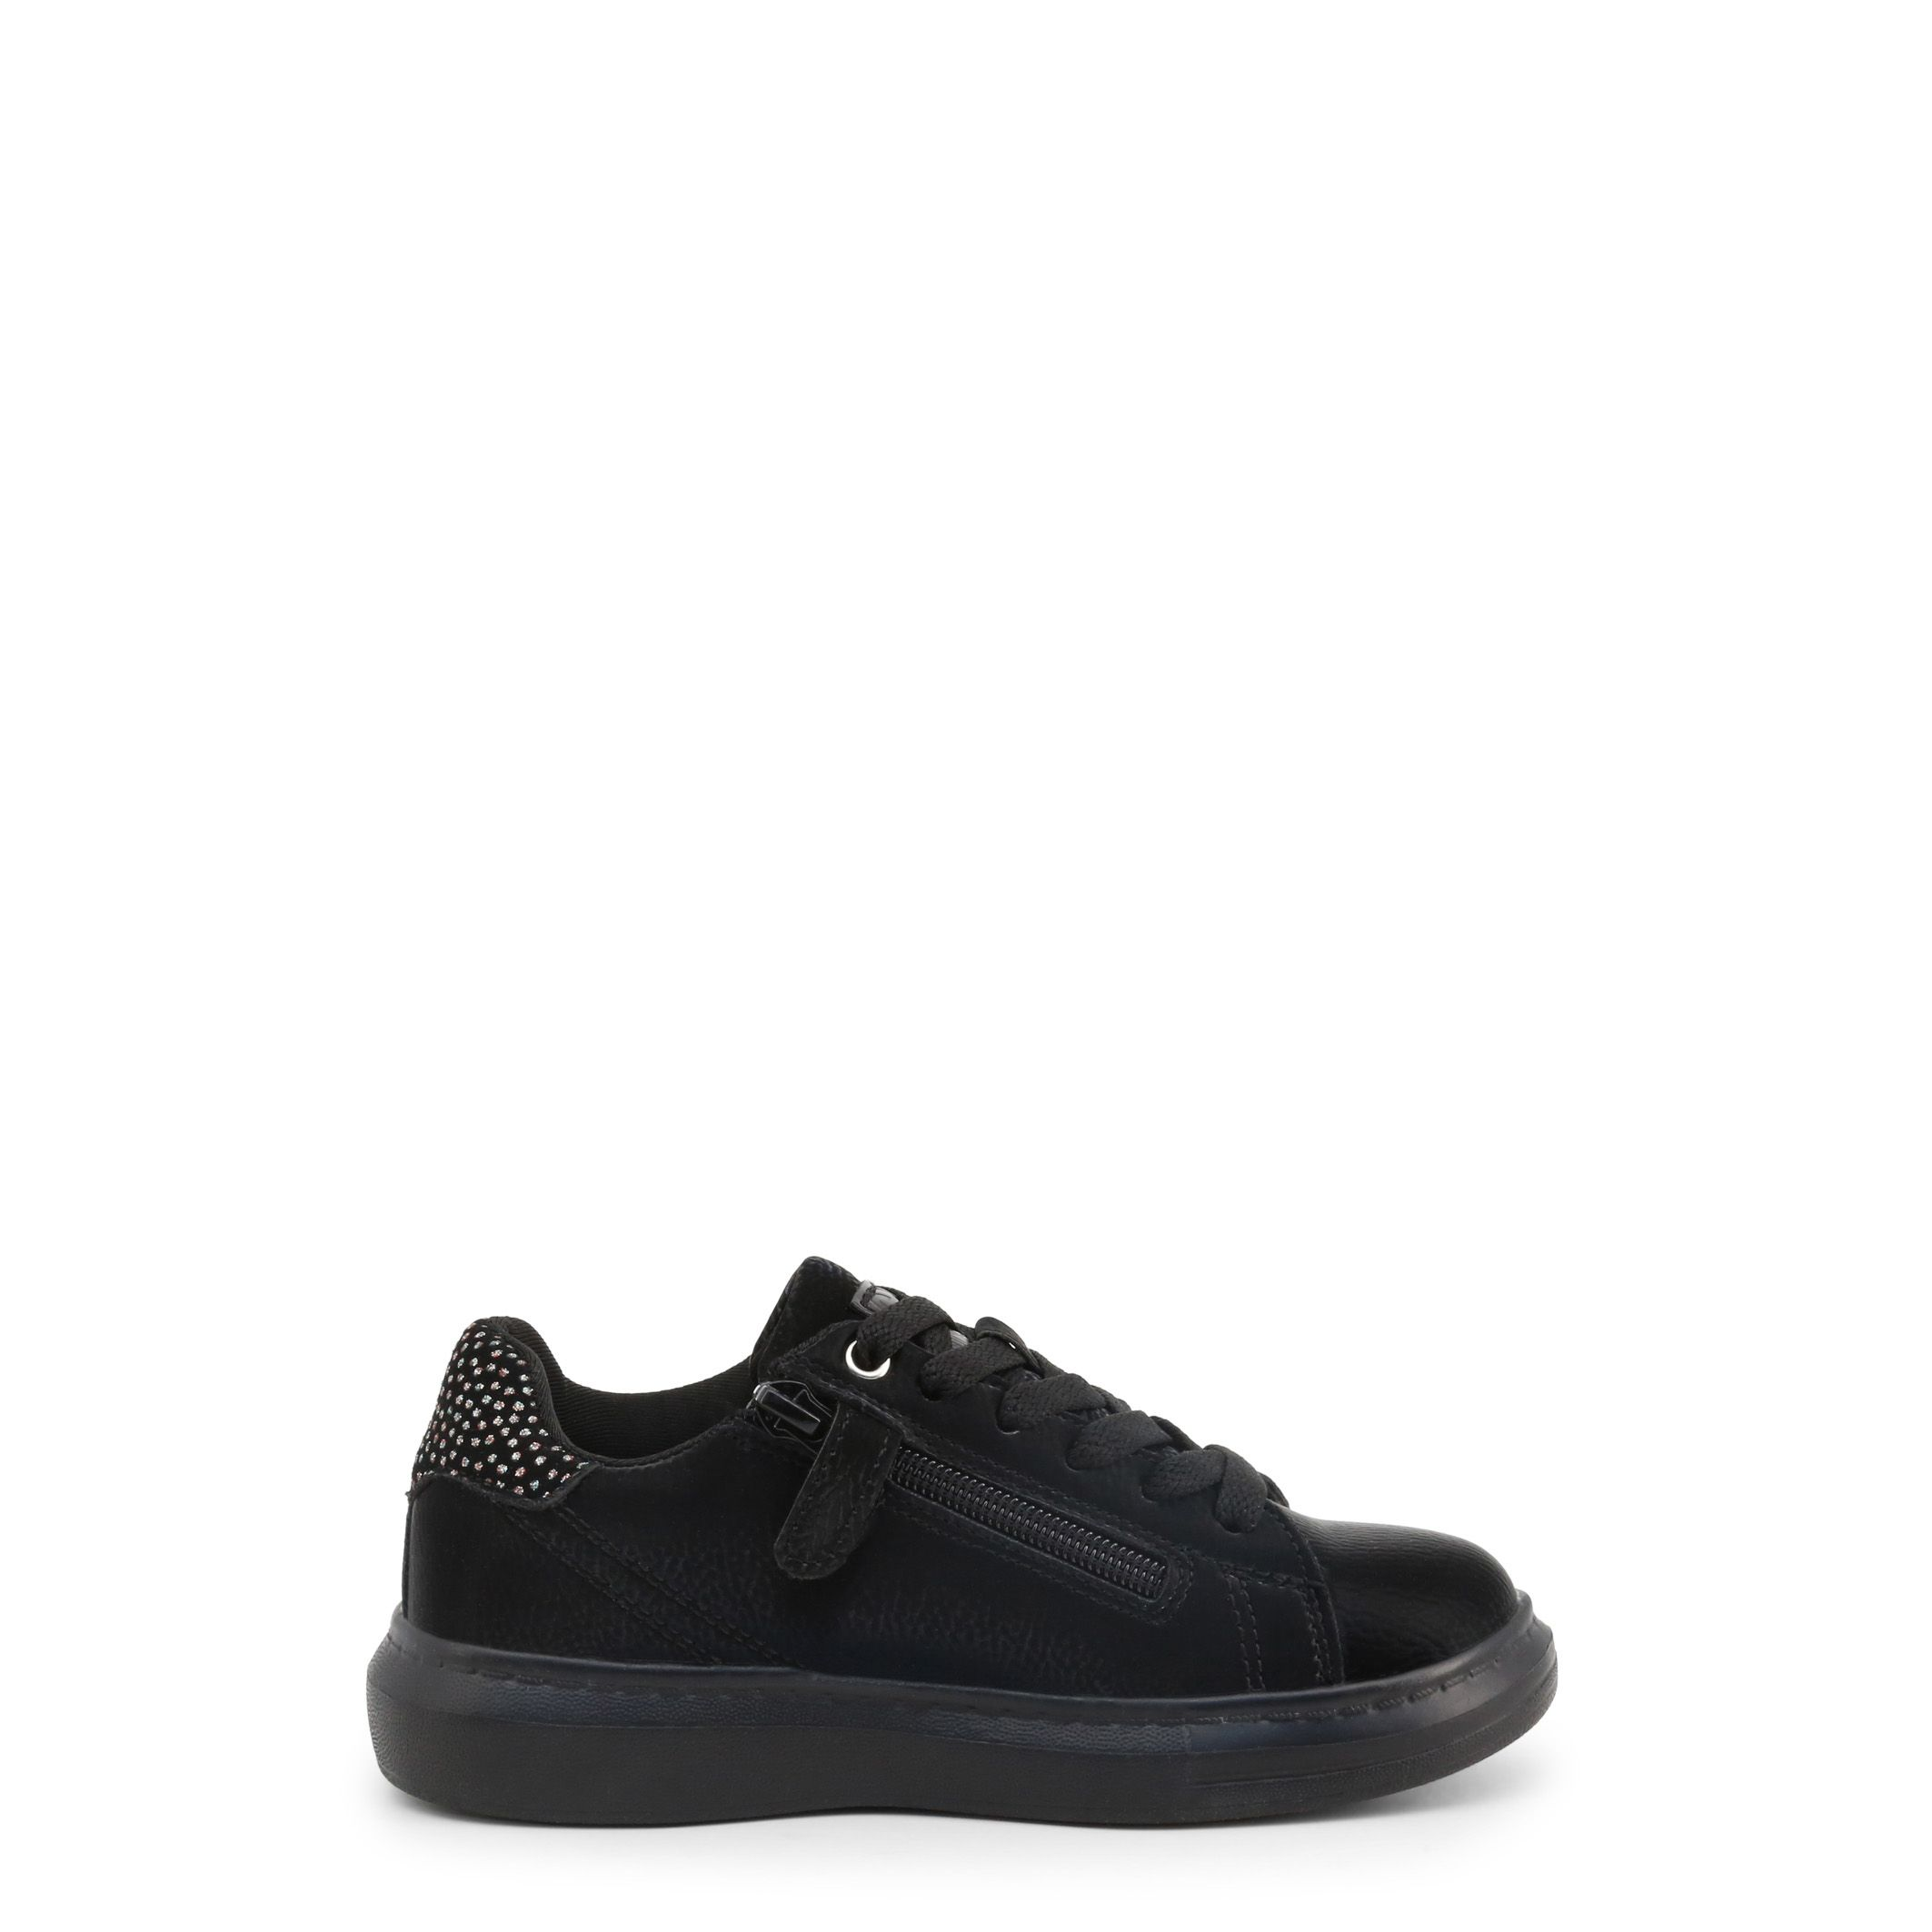 Chaussures Shone – S8015-003